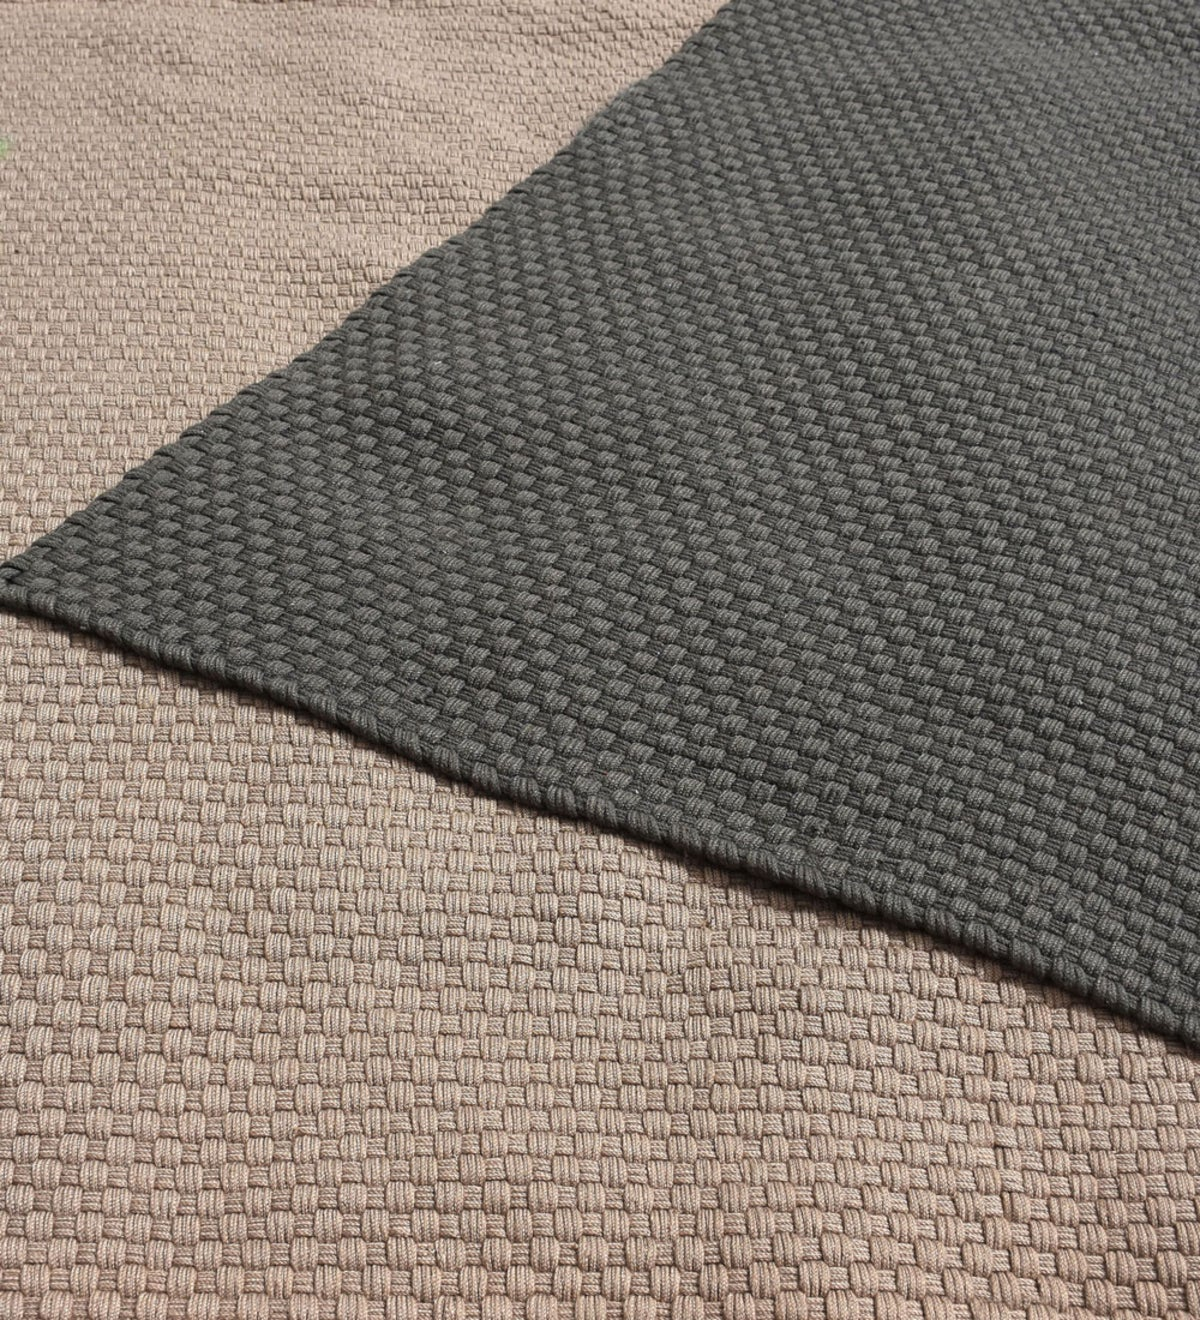 Handwoven Recycled Plastic Indoor/Outdoor Rug